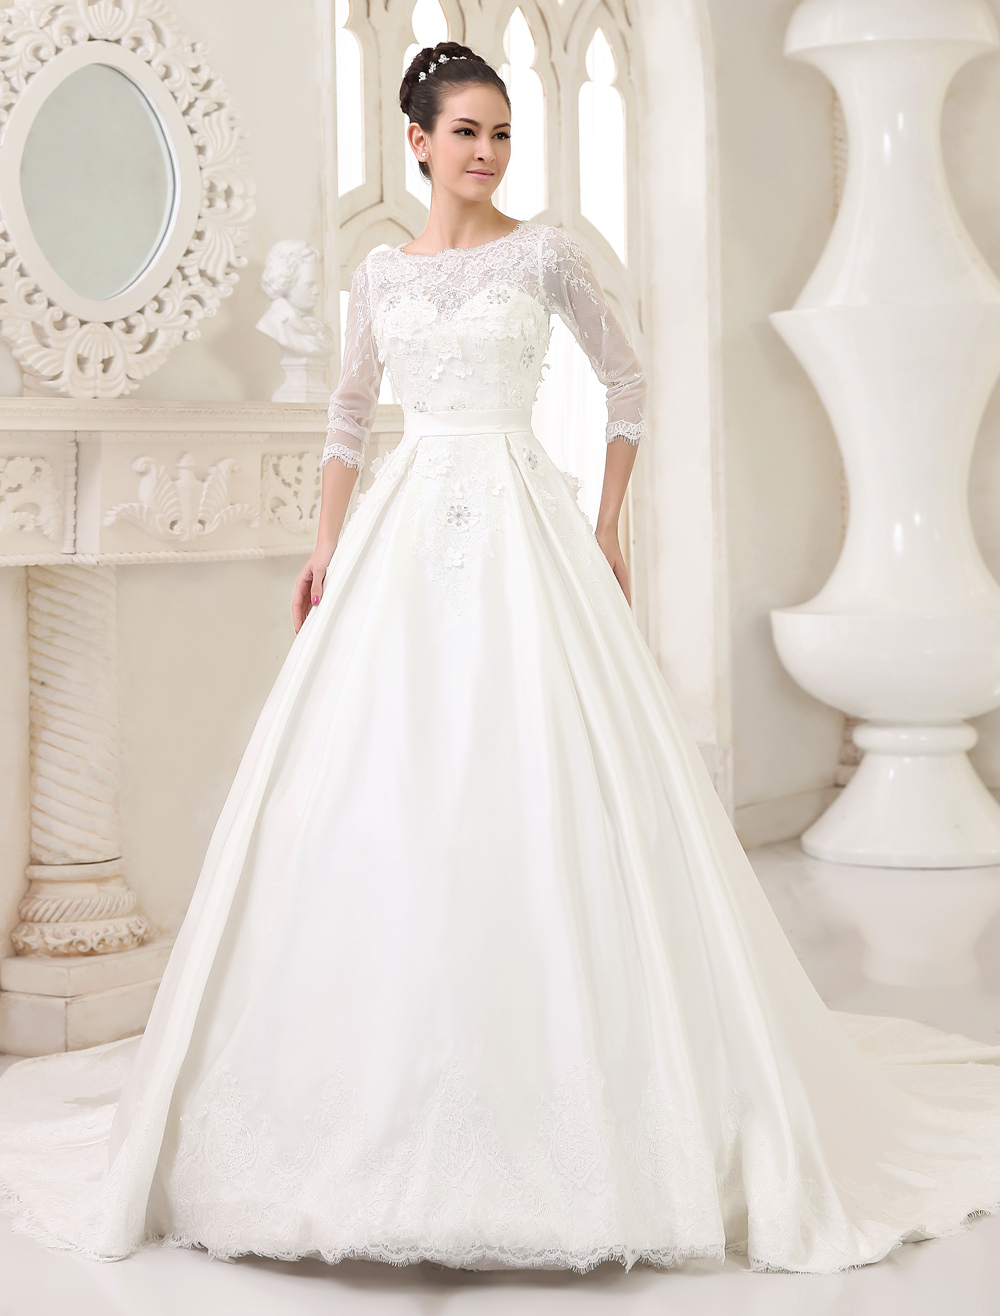 Glamour Ivory A-line Scoop Neck Flower Chapel Train Bridal Wedding Gown  Milanoo